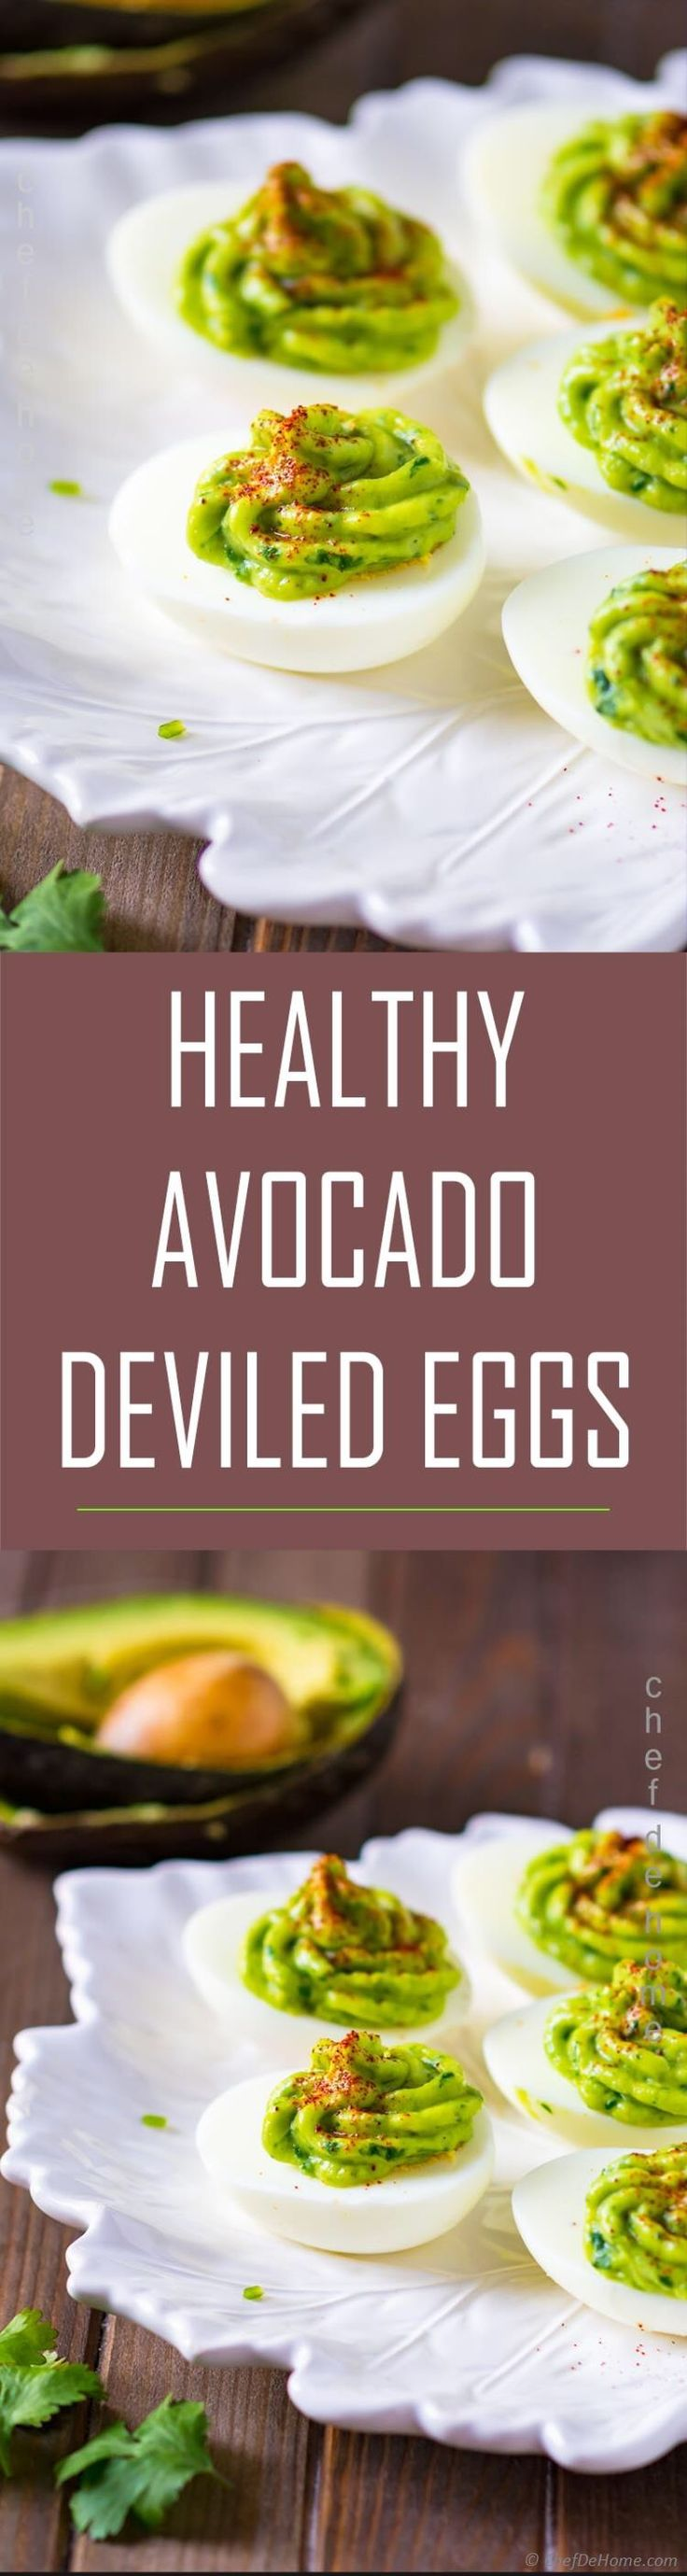 Healthy Deviled Eggs with Avocado Recipe is Quick and healthy Deviled Eggs! These deviled eggs are packed with egg-protein, topped with homemade spicy and green good-fat avocado sauce! They are also mayo free and far more quicker to put together! Paleo, gluten free, and ketogenic diet friendly!Honestly, eggs and avocado are made for each other.